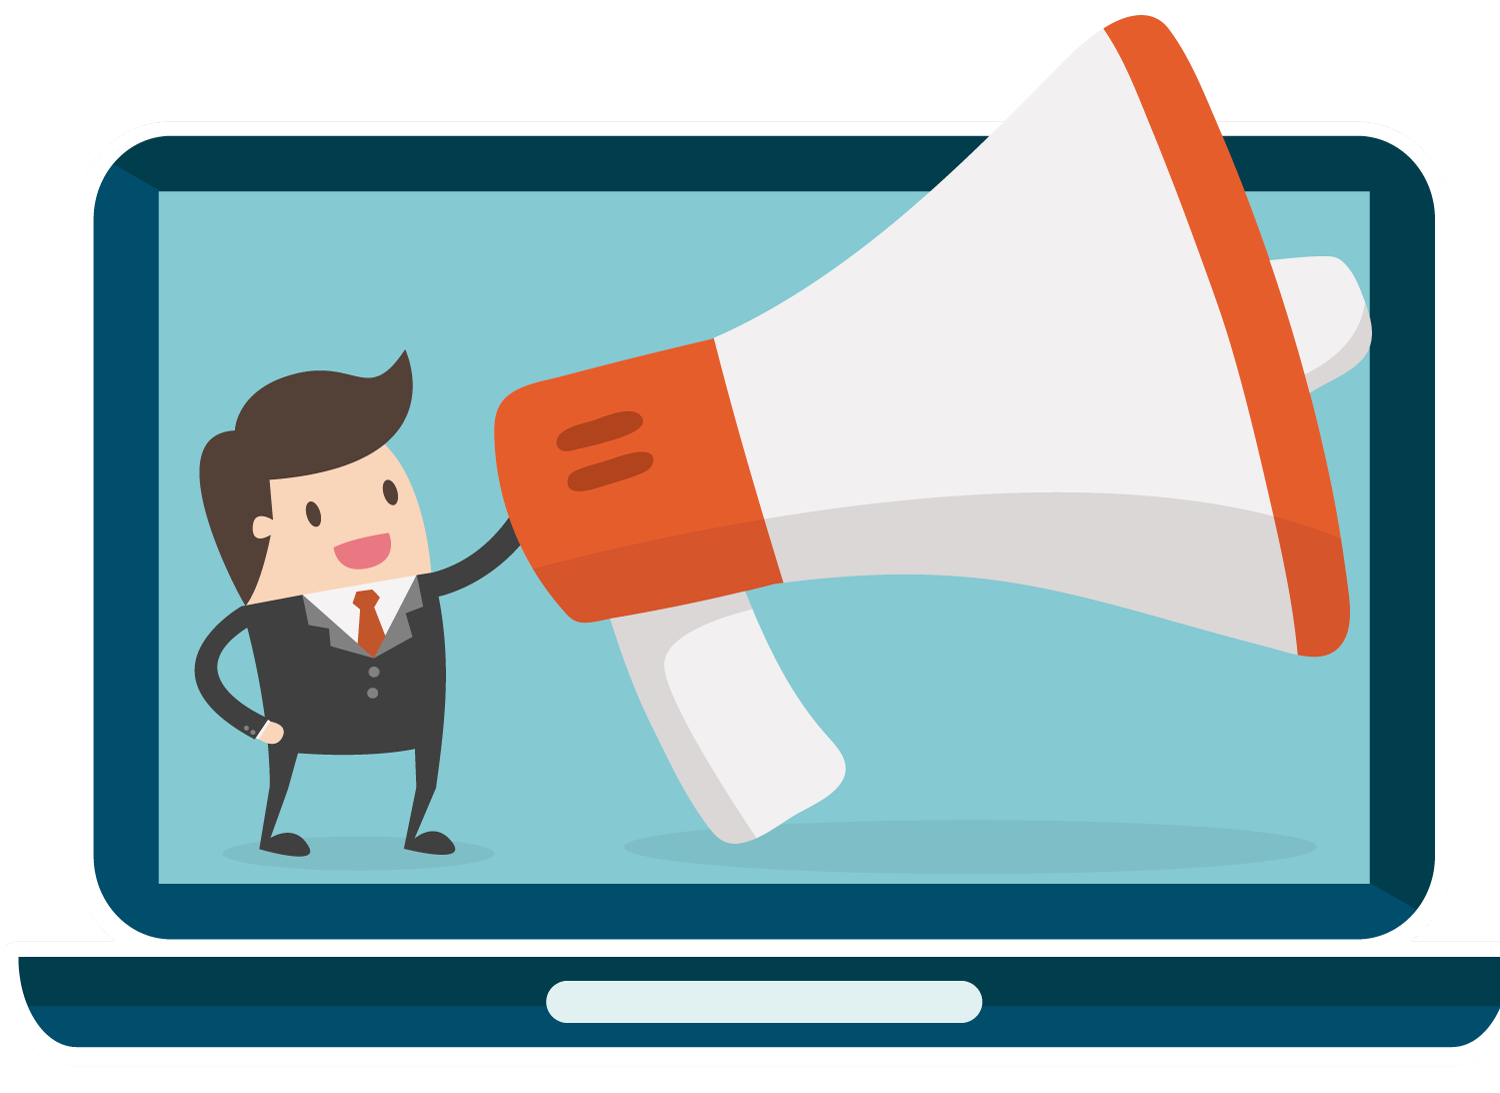 transparent stock Advertising clipart megaphone. Sr simple and cost.